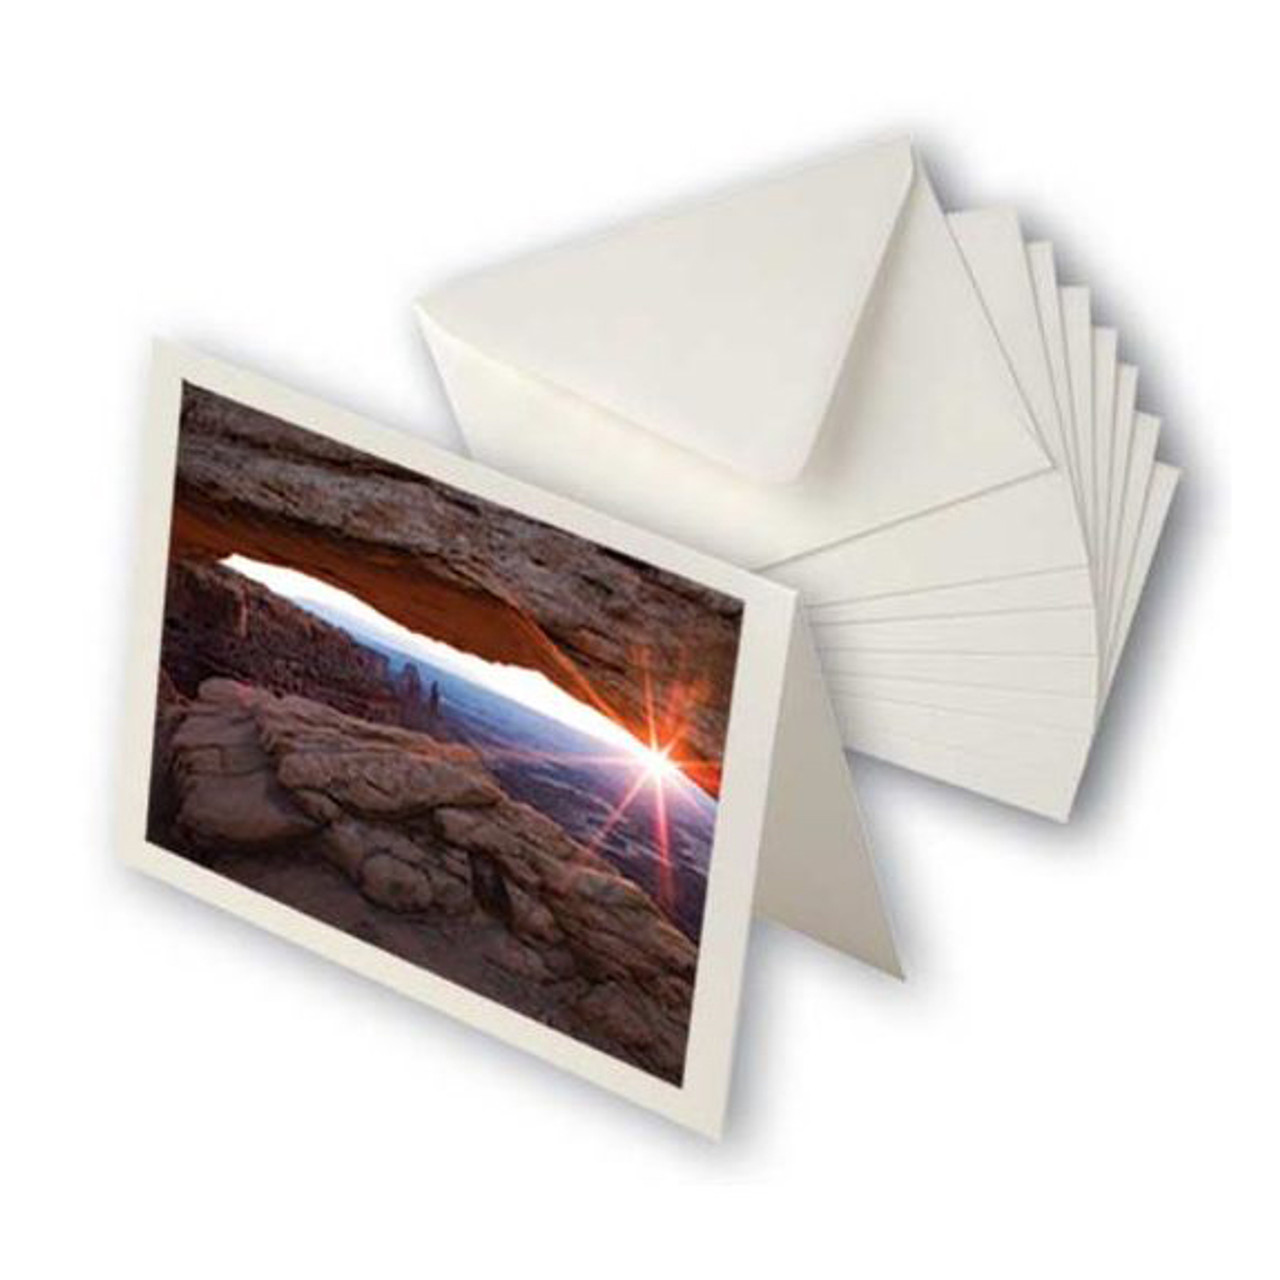 MOAB ENTRADALOPES 190 CARD/ENVELOPE - NATURAL